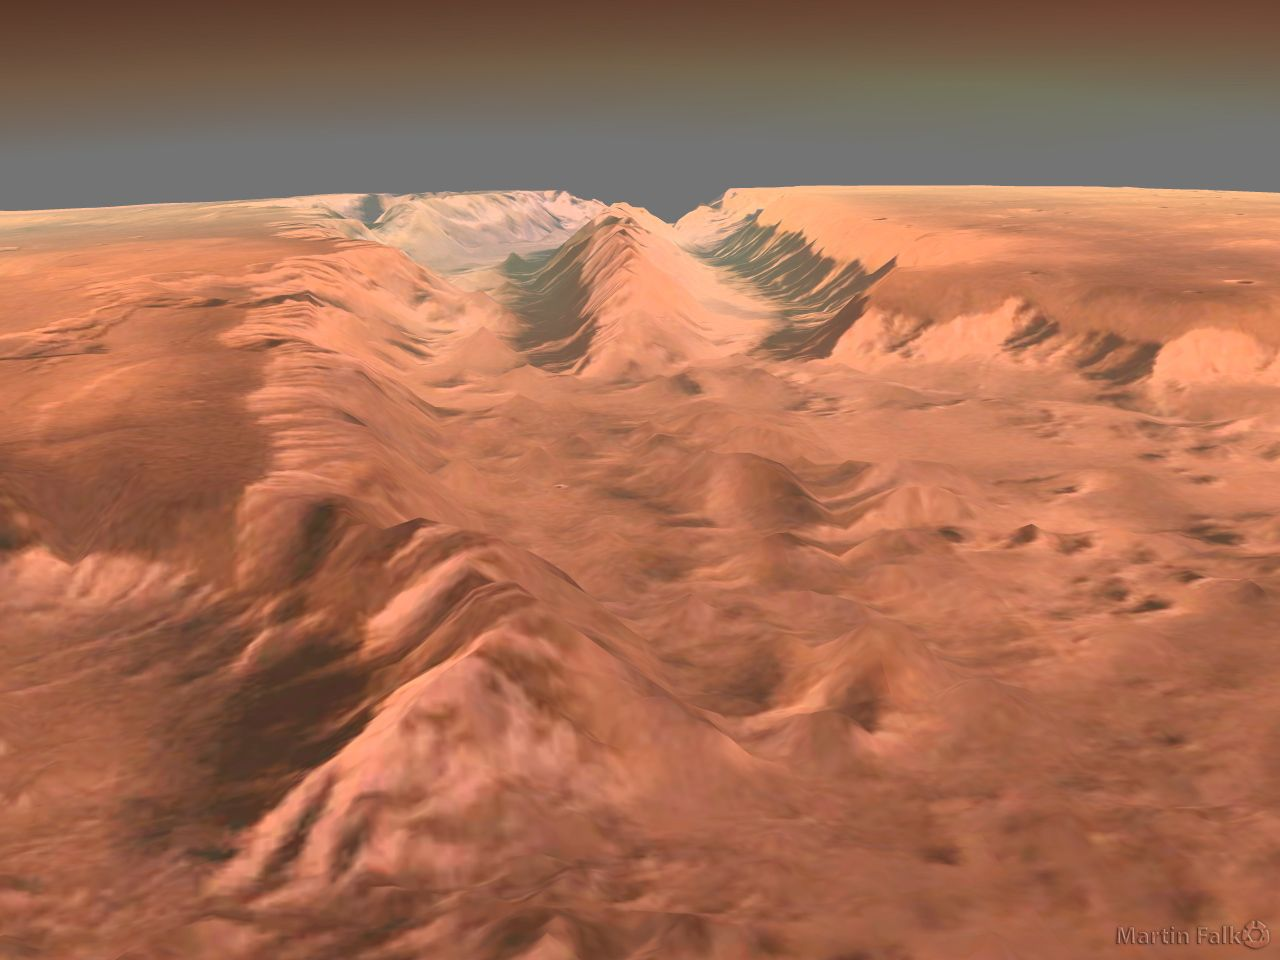 mars vallesMarineris